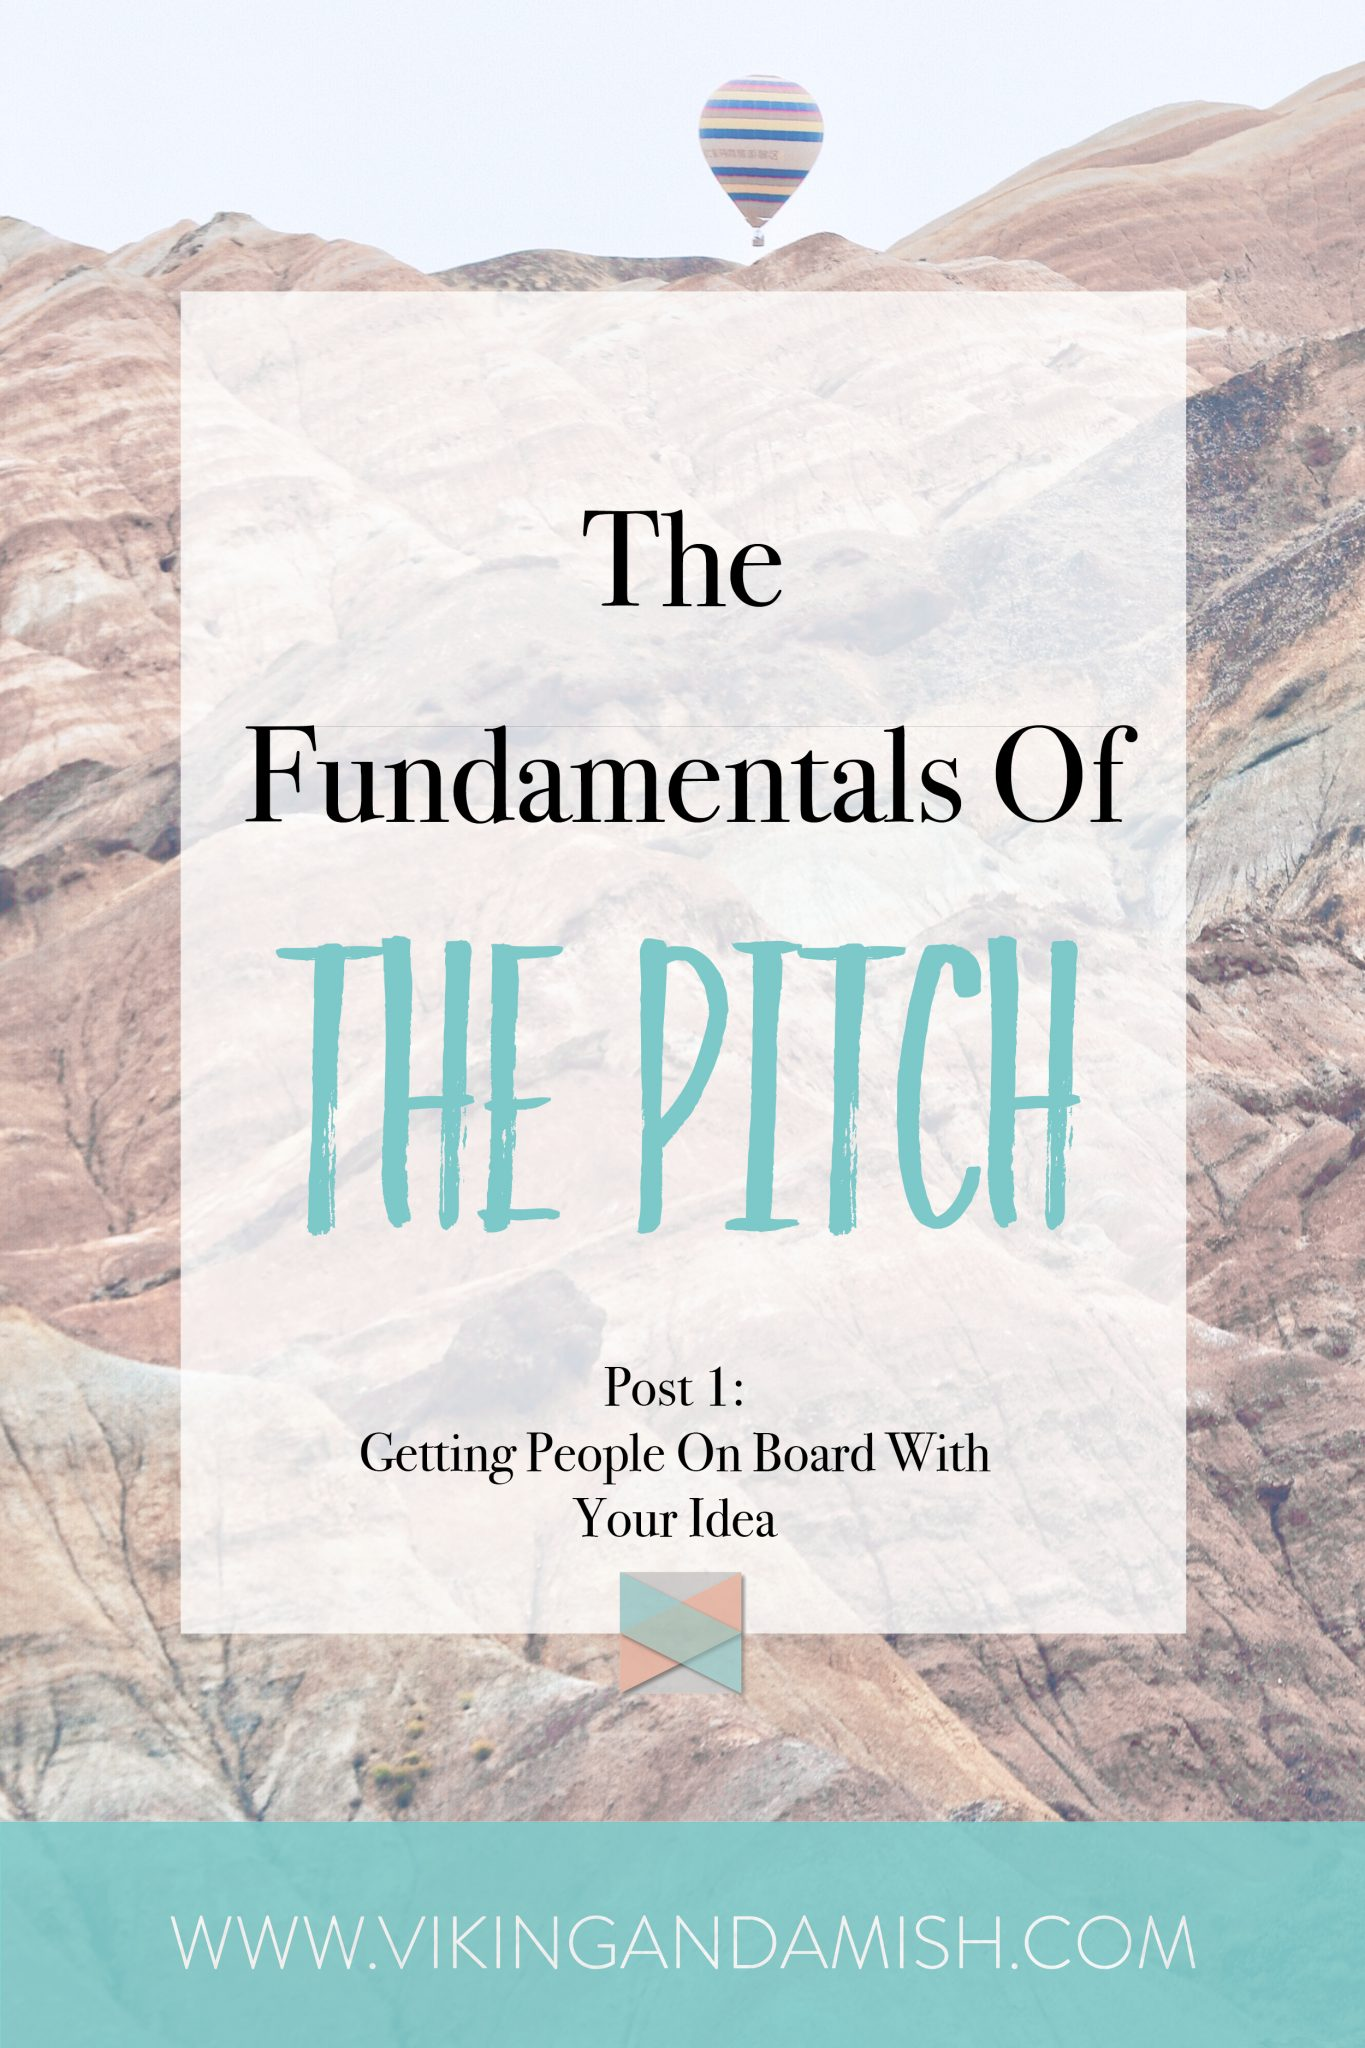 The Fundamentals Of The Pitch - Learn how to get people on board with your idea | www.vikingandamish.com